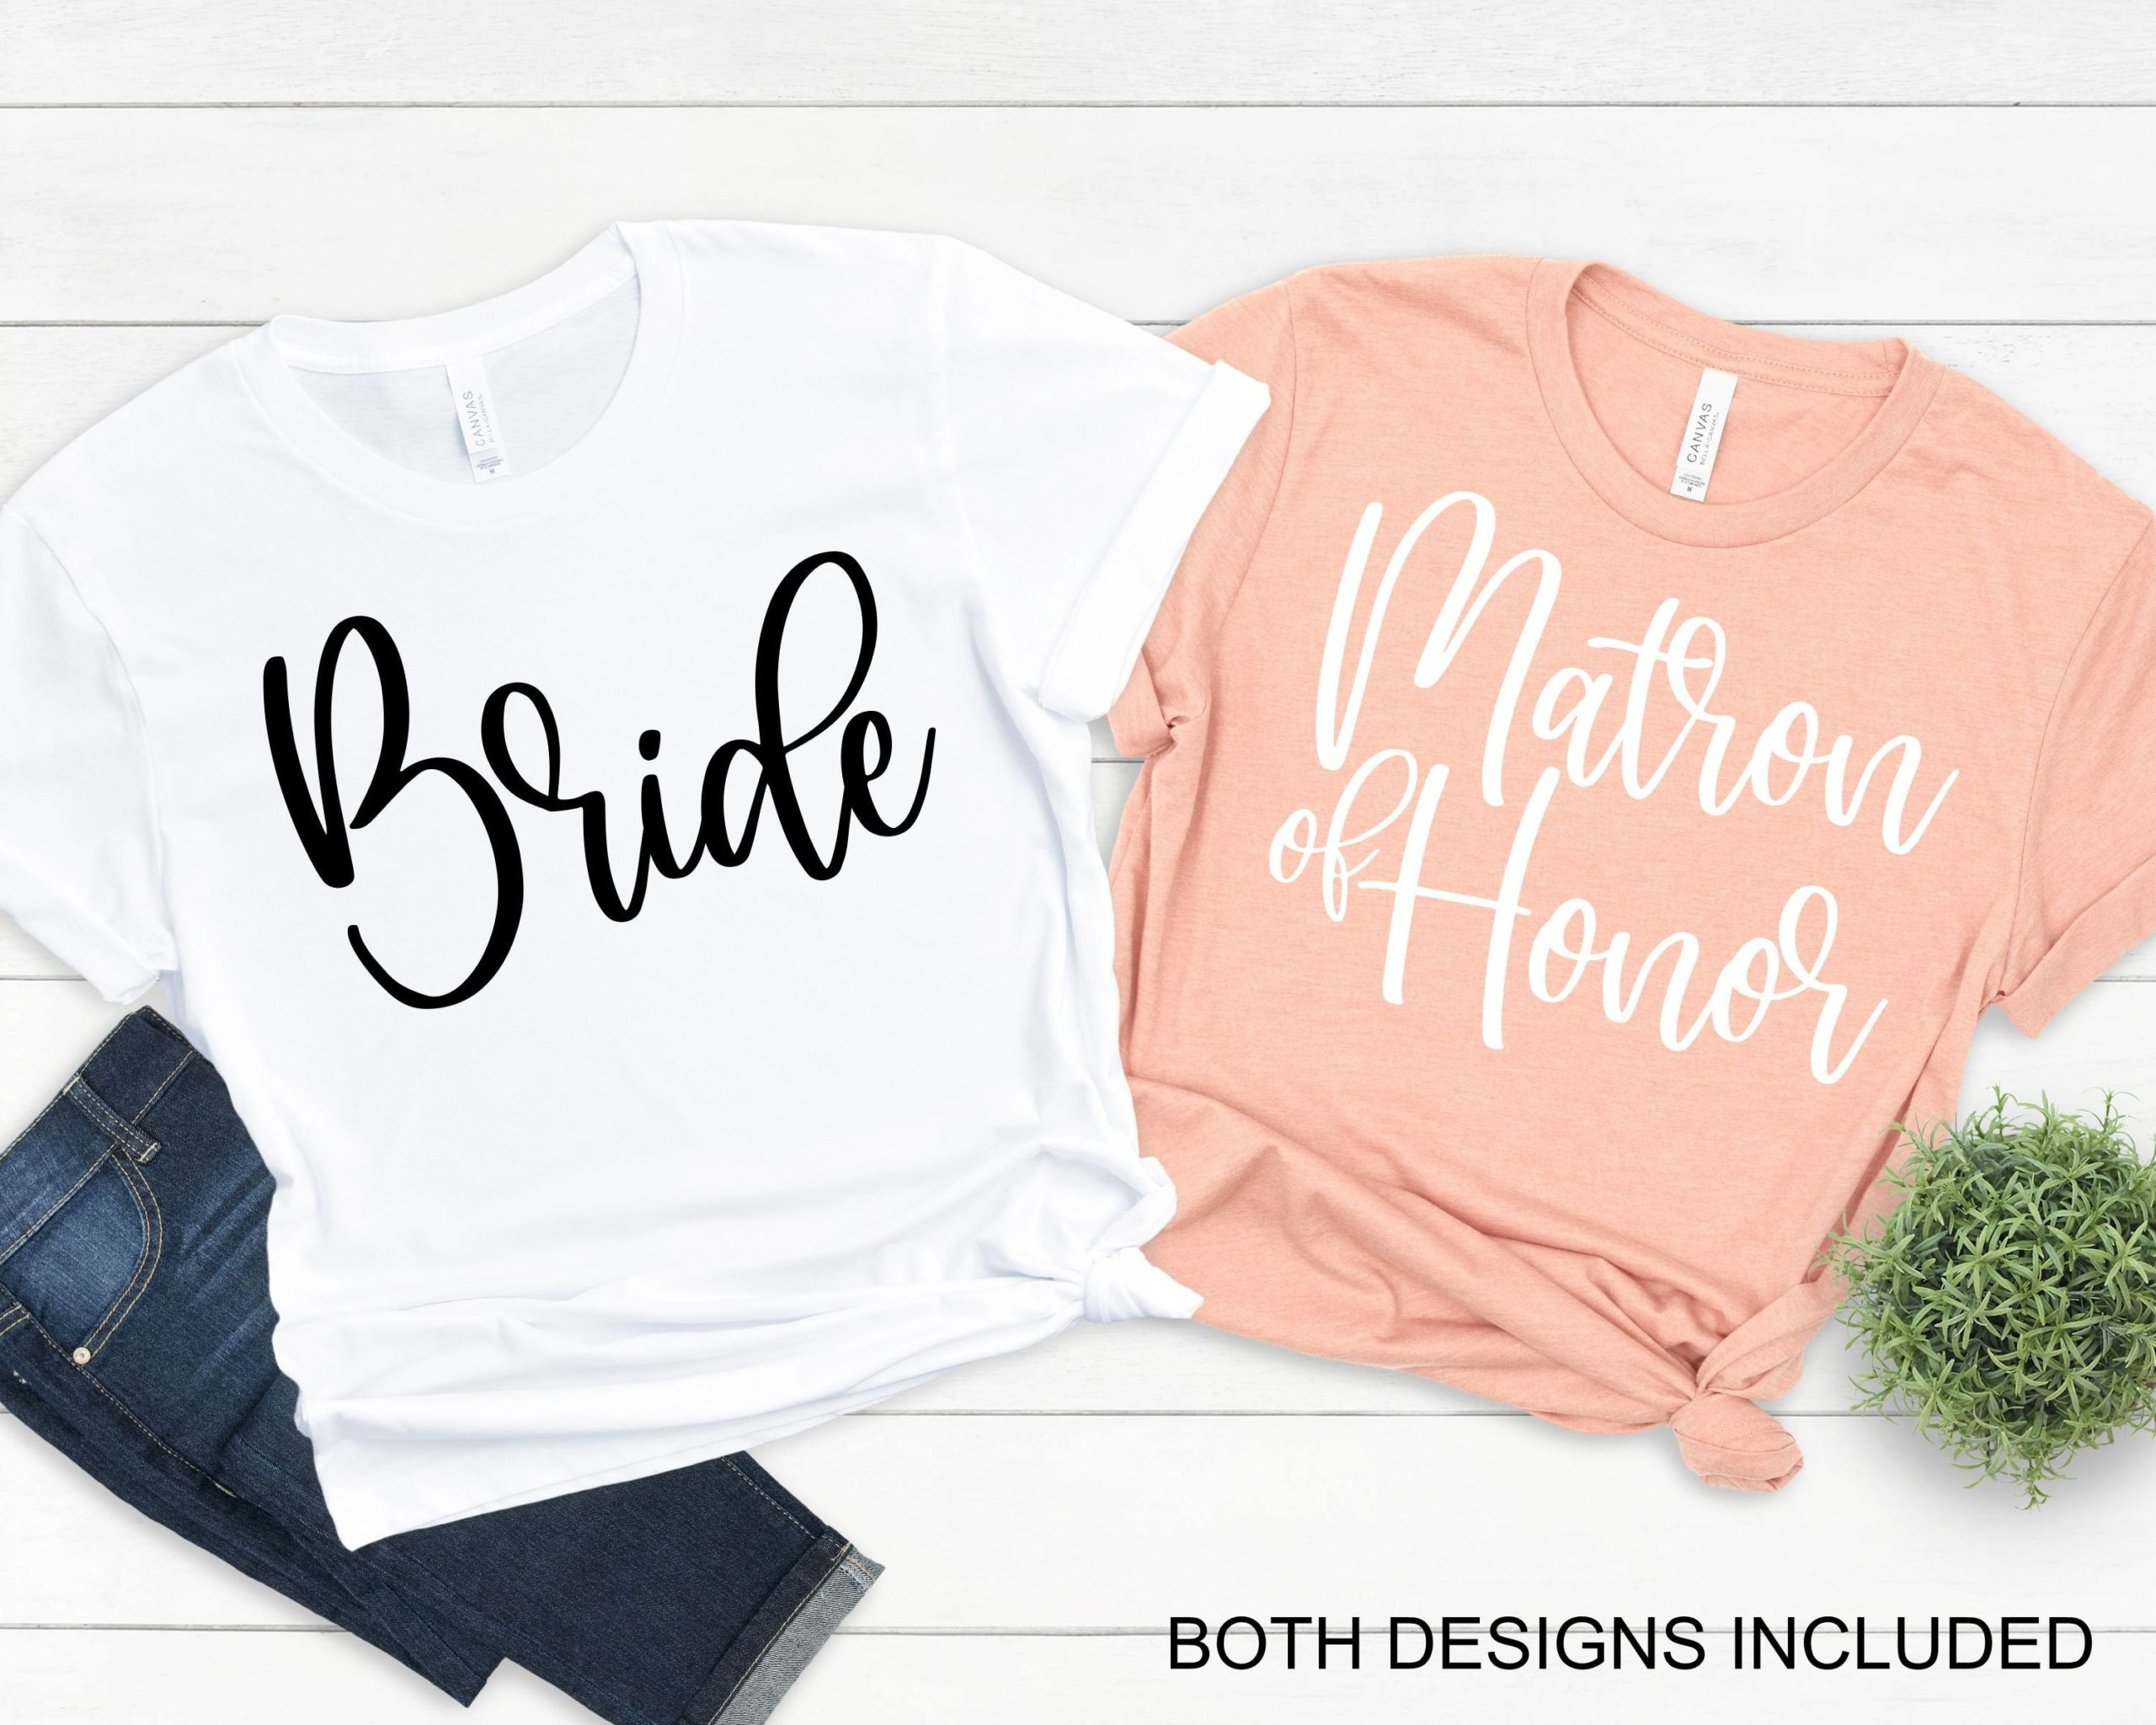 Bride-and-matron-of-honor-svg-matron-of-honor-svg-bridal-party-svg-wedding-svg-design-bachelorette-svg-design-bridesmaid-cricut-svg-600a15b6